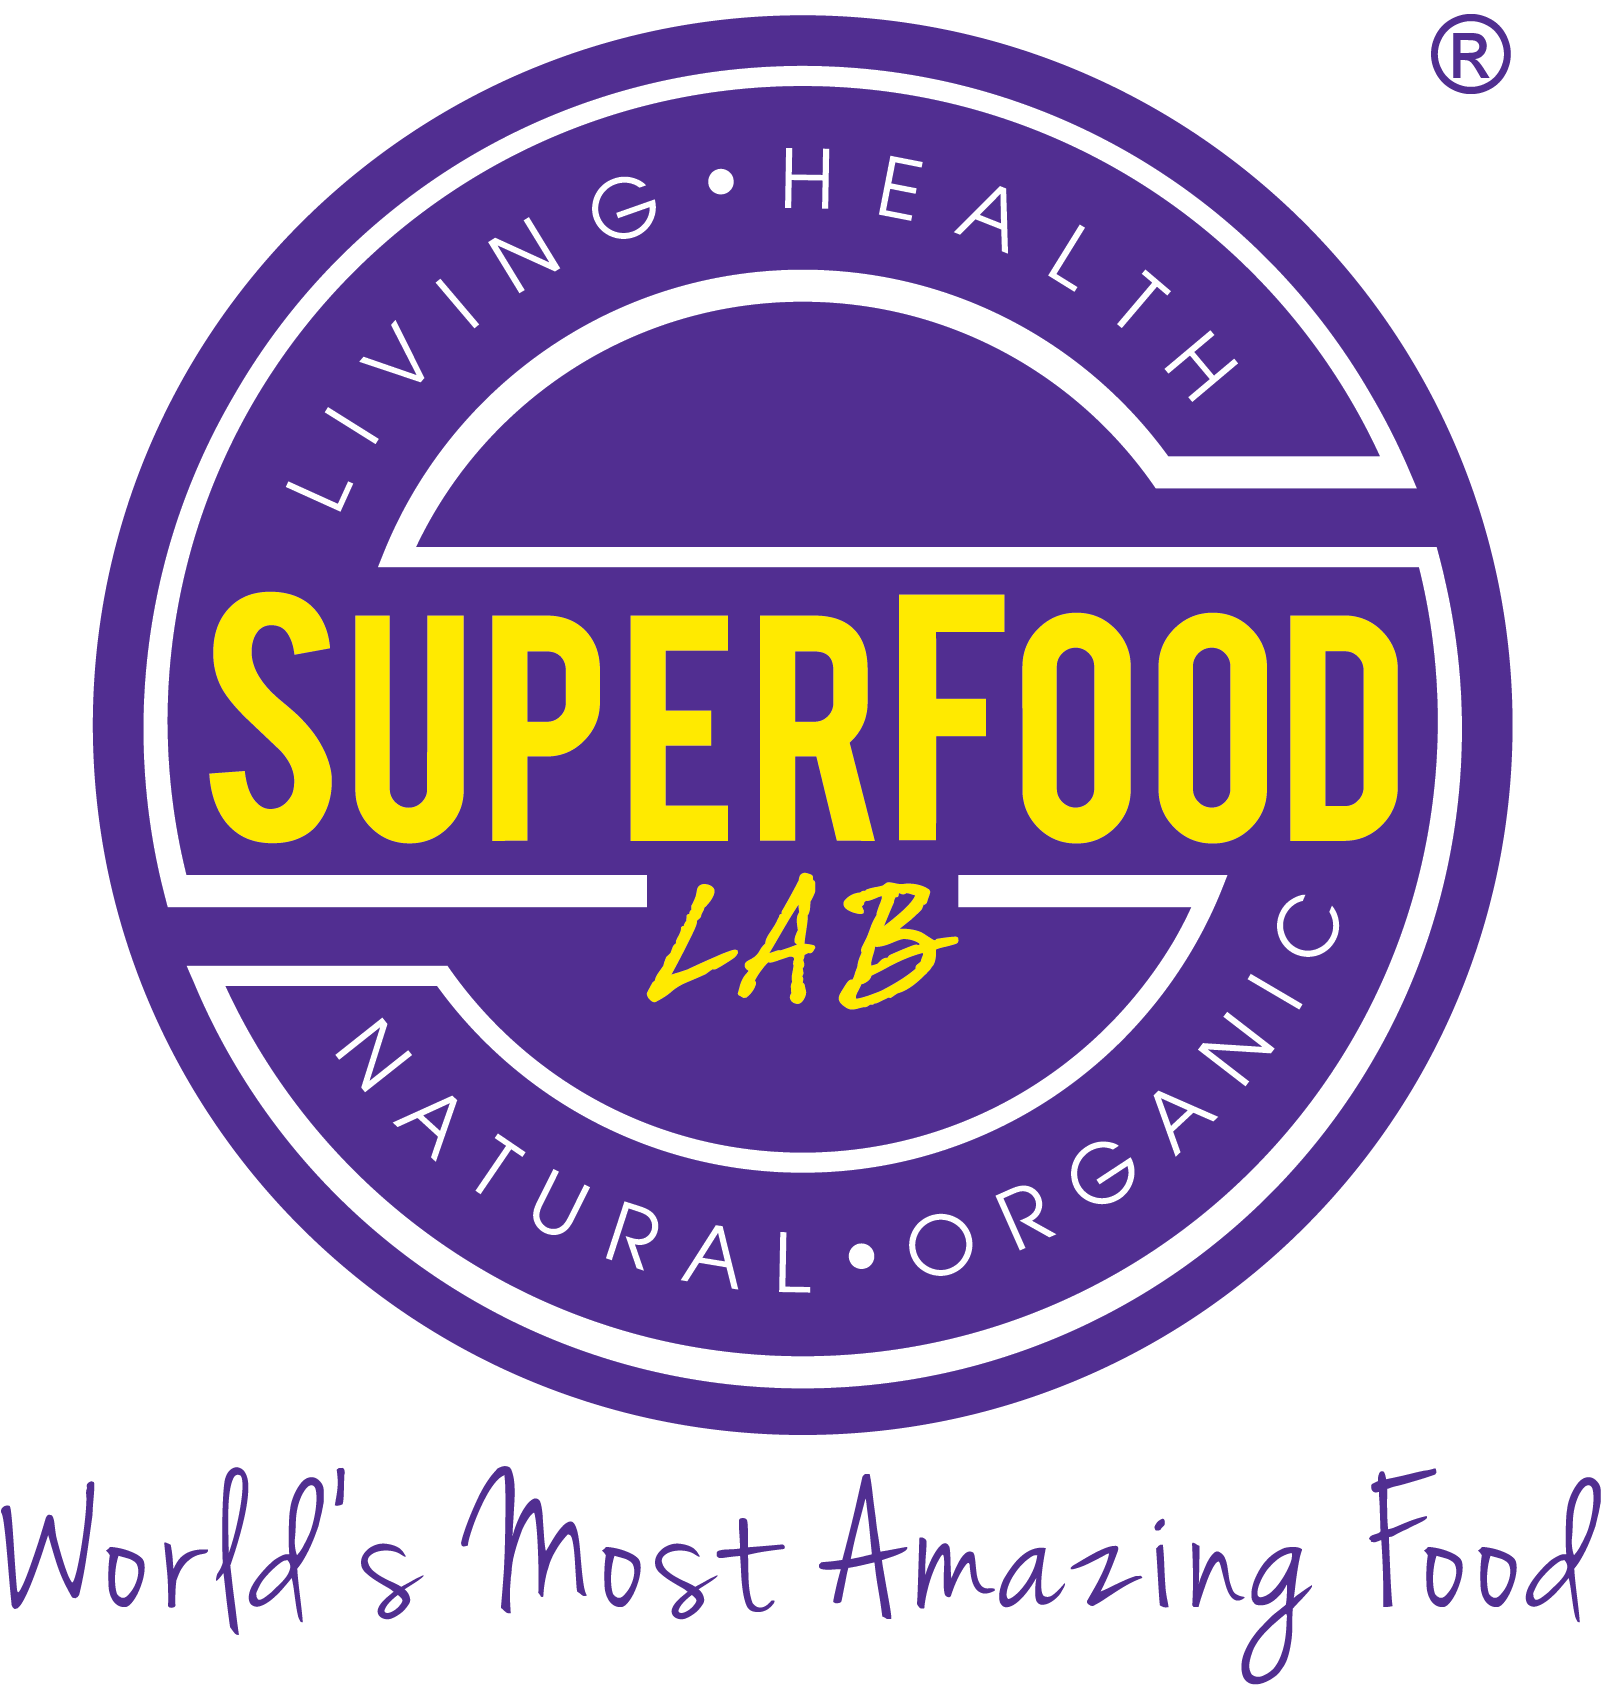 Superfoodlab